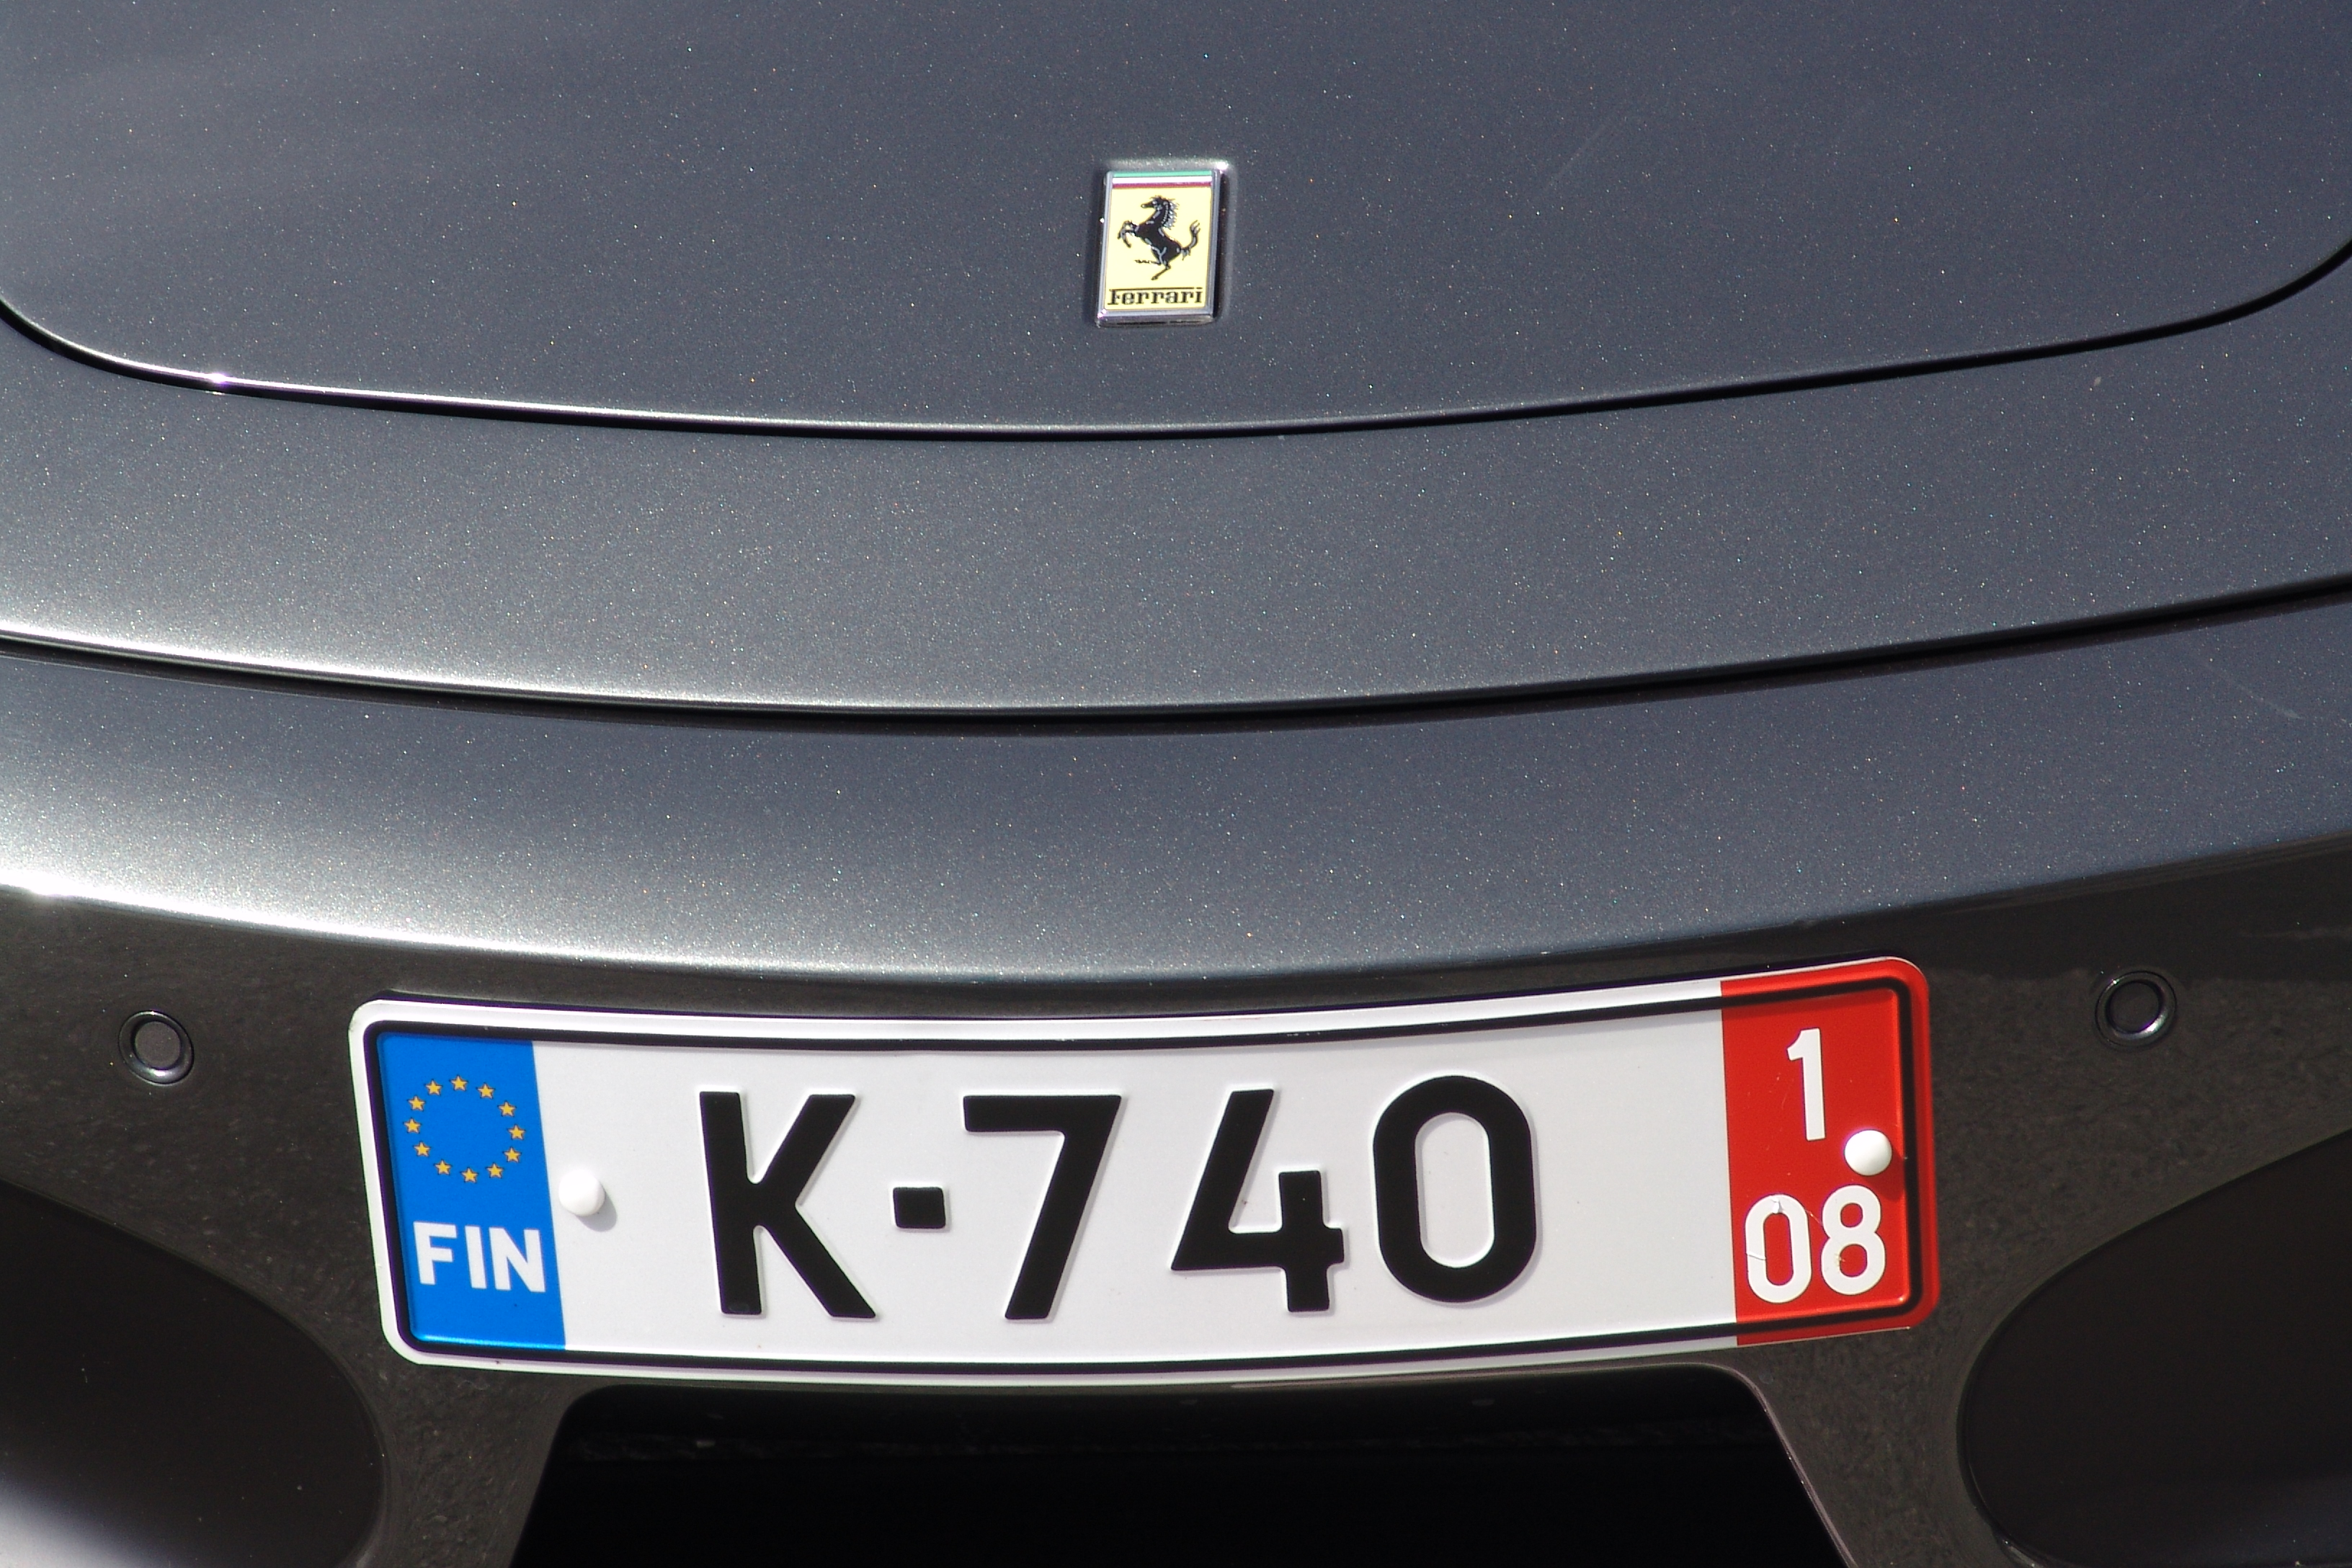 Search For Car Using Number Plate